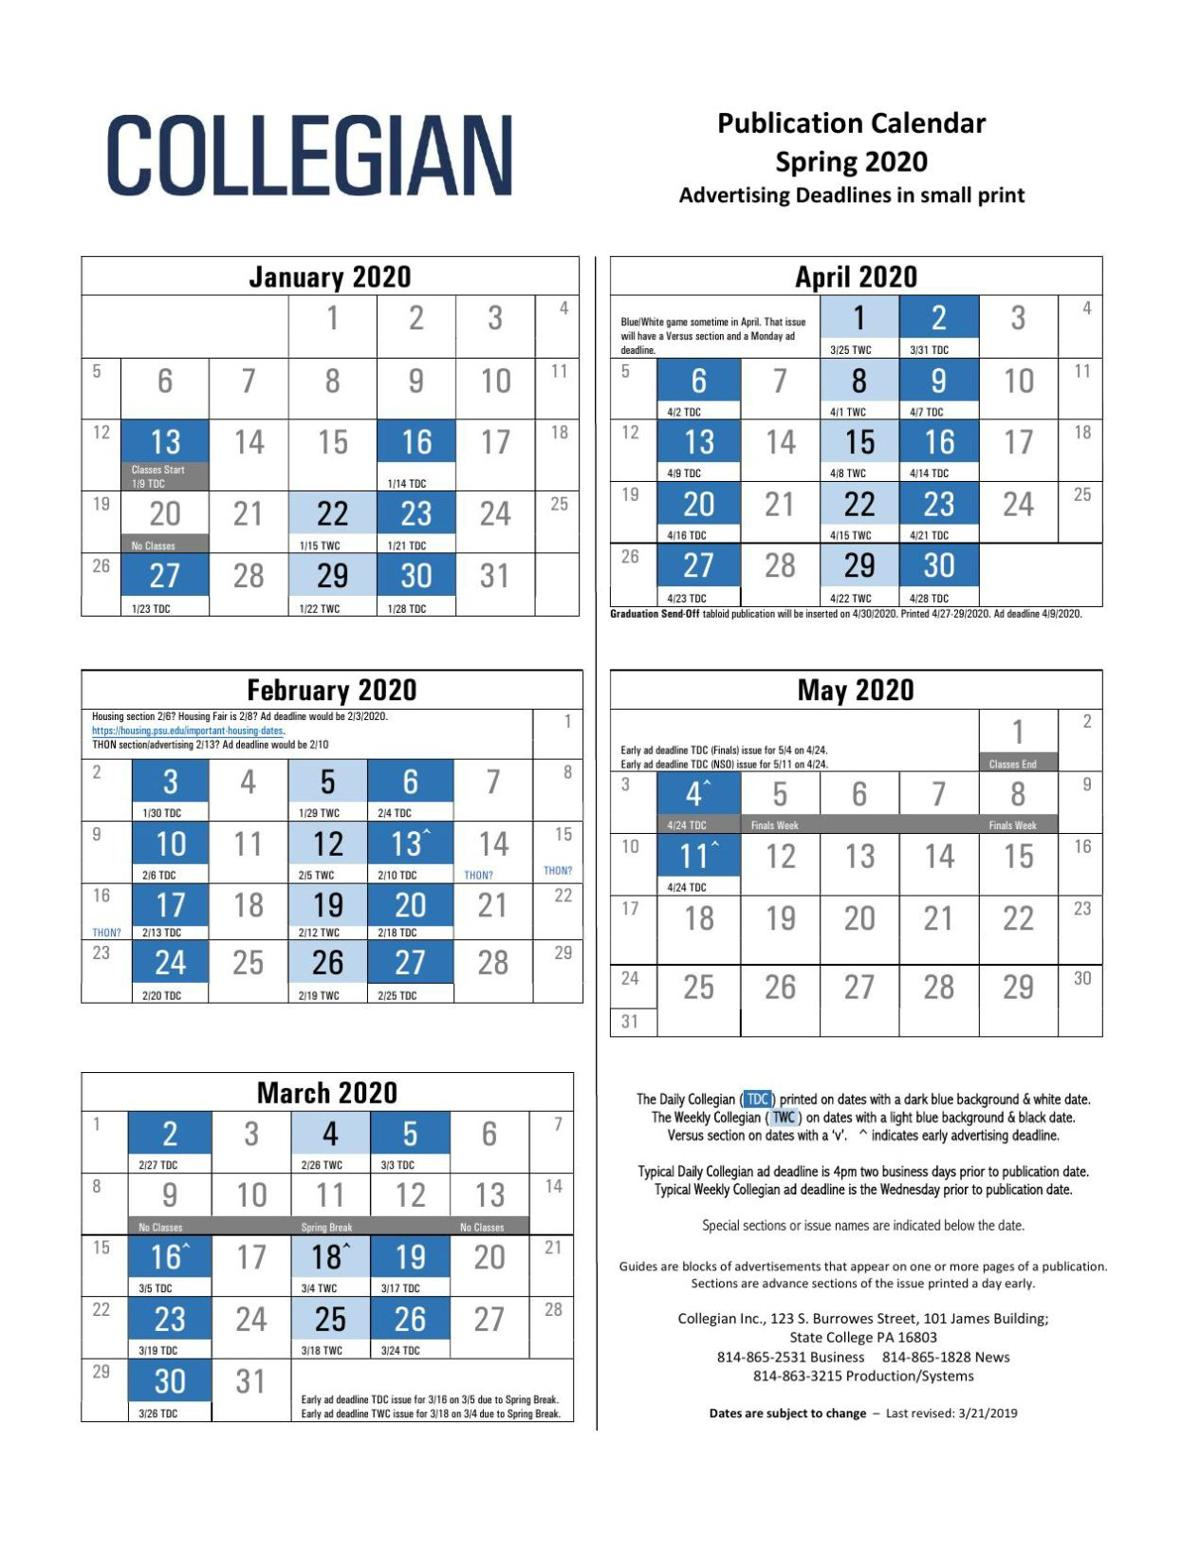 Psu Spring 2020 Calendar Collegian publication calendar for Spring 2020 | Advertising